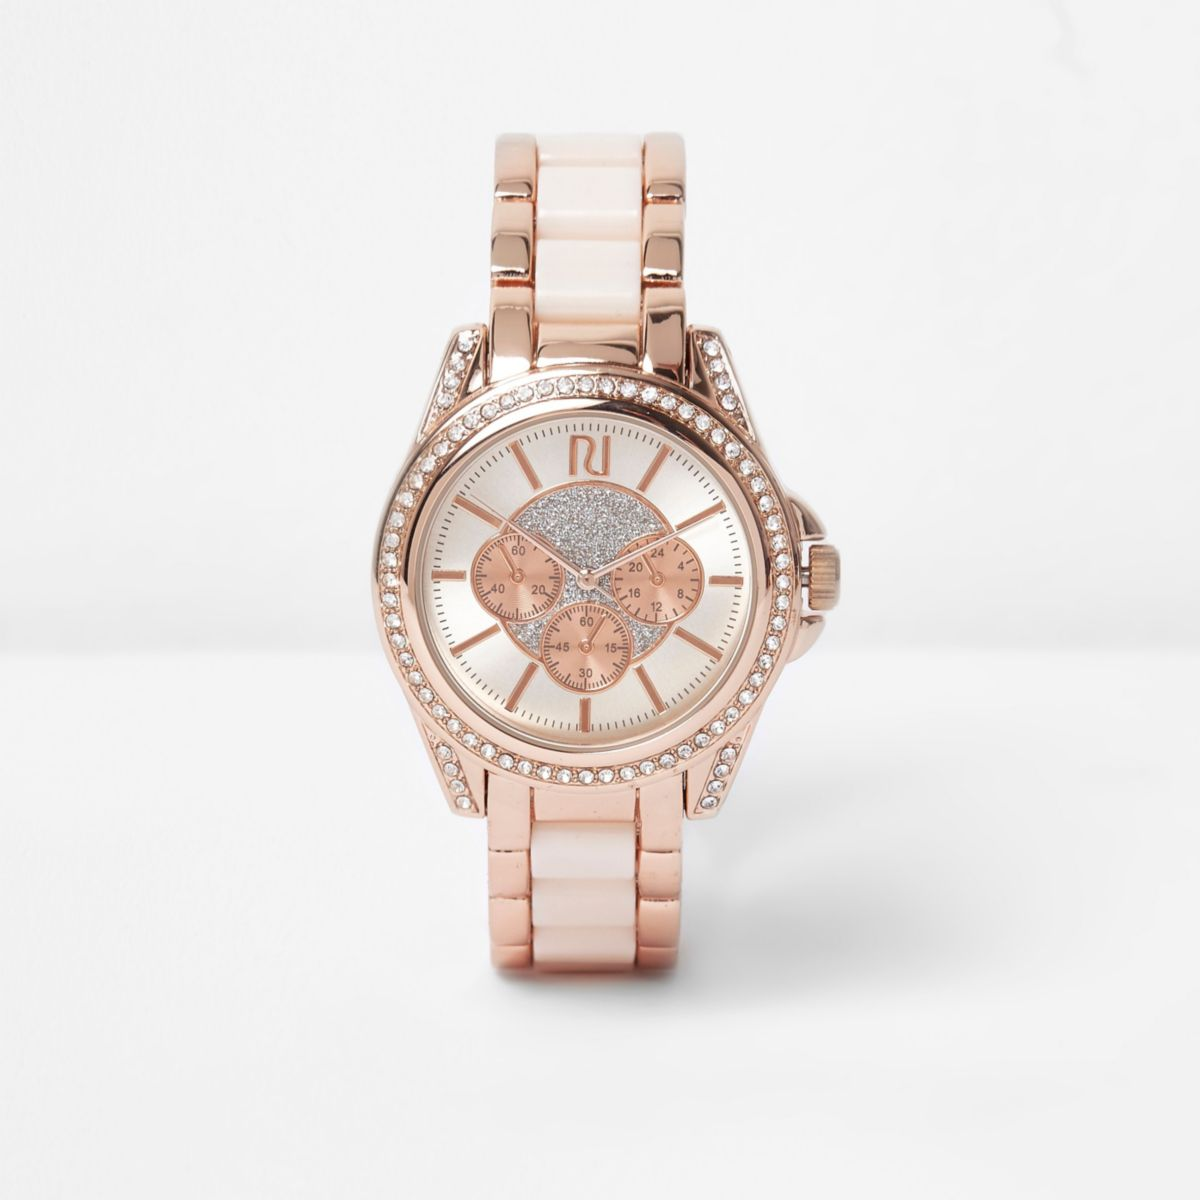 Plus rose gold tone chain embellished watch